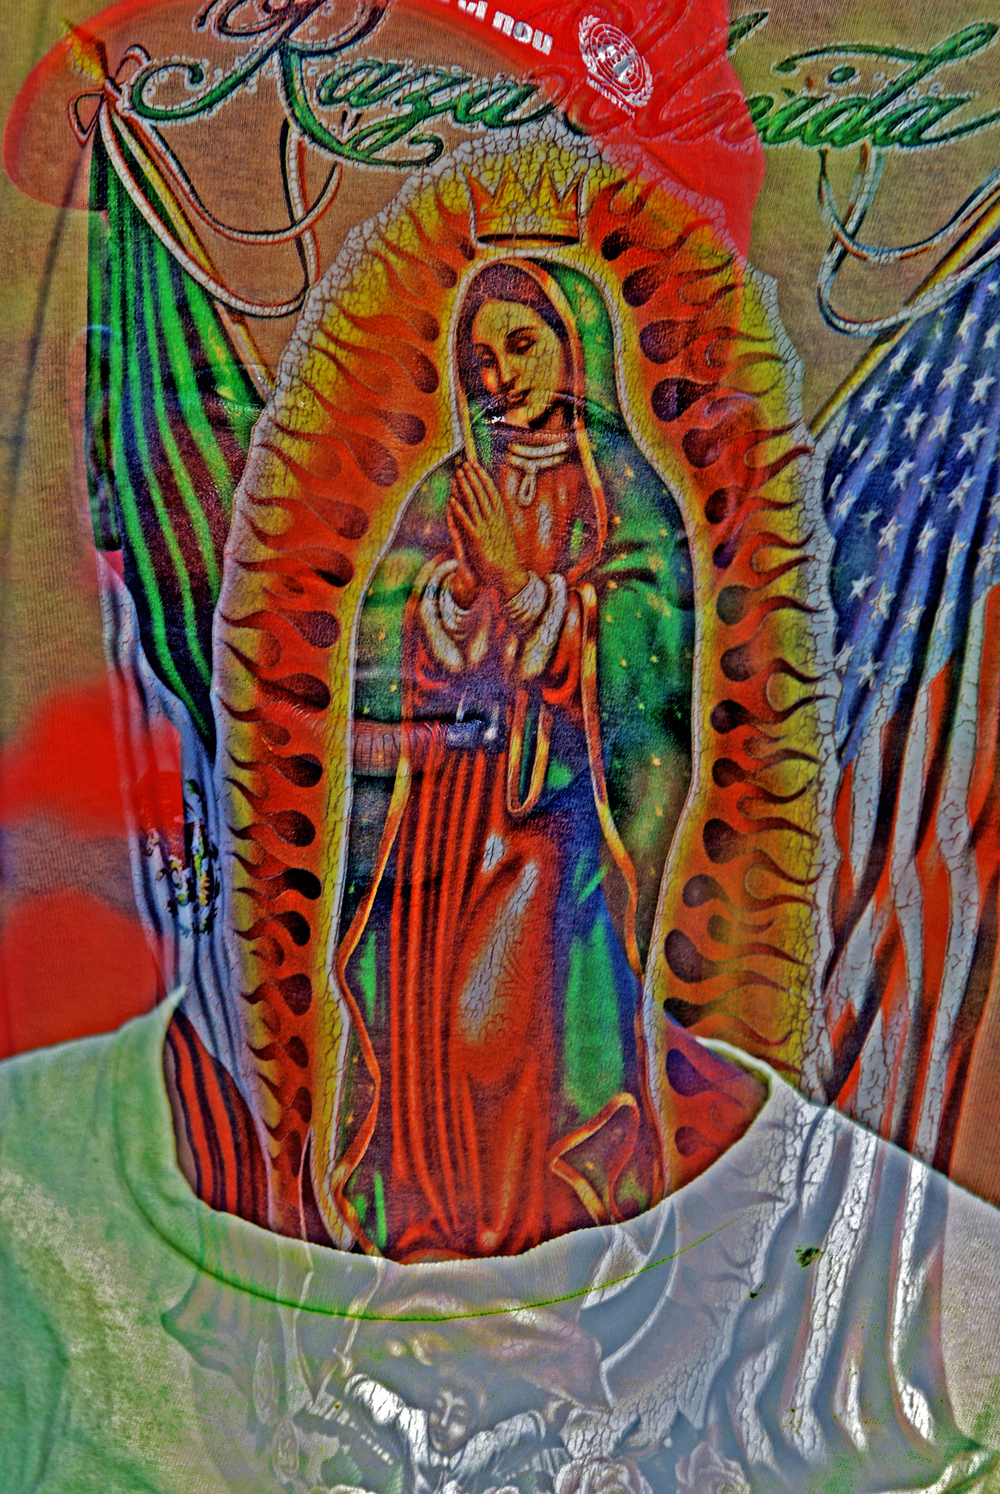 Our Lady Found in Haiti on a T-Shirt